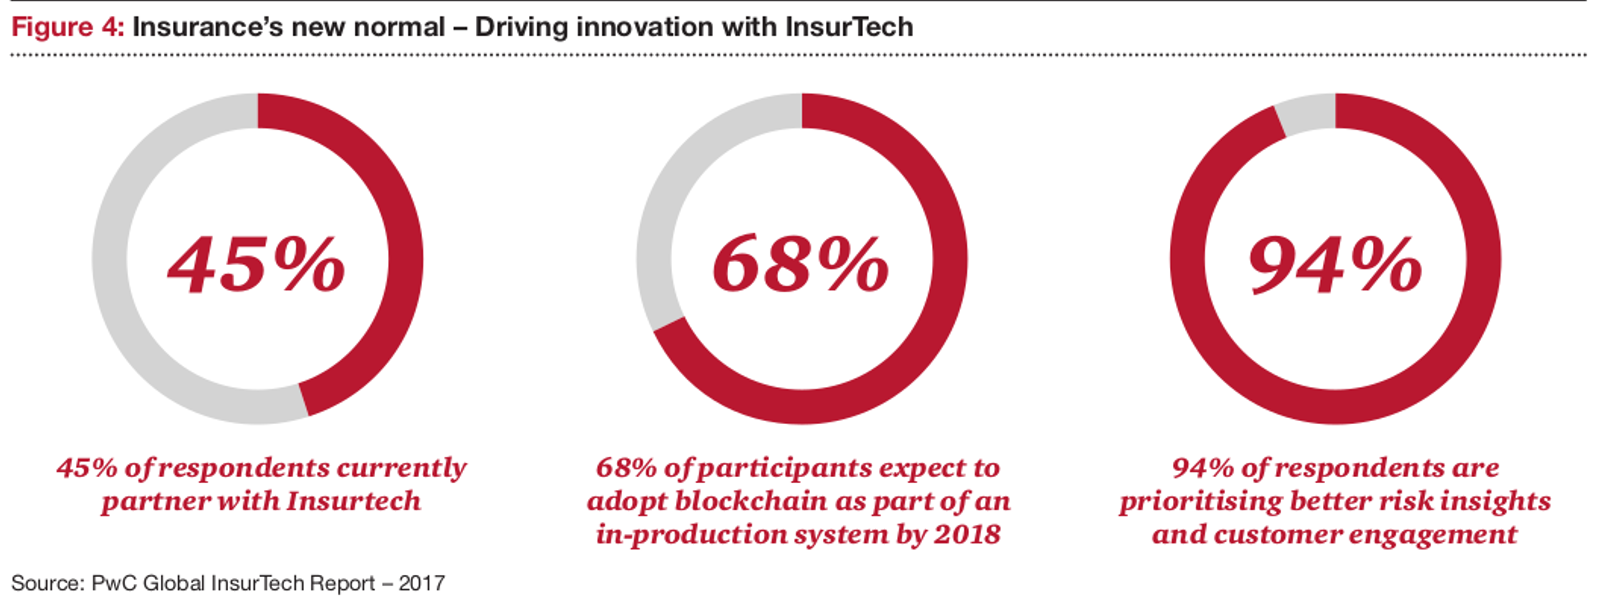 PWC report on disruption and (re)insurance - Germany FinTech